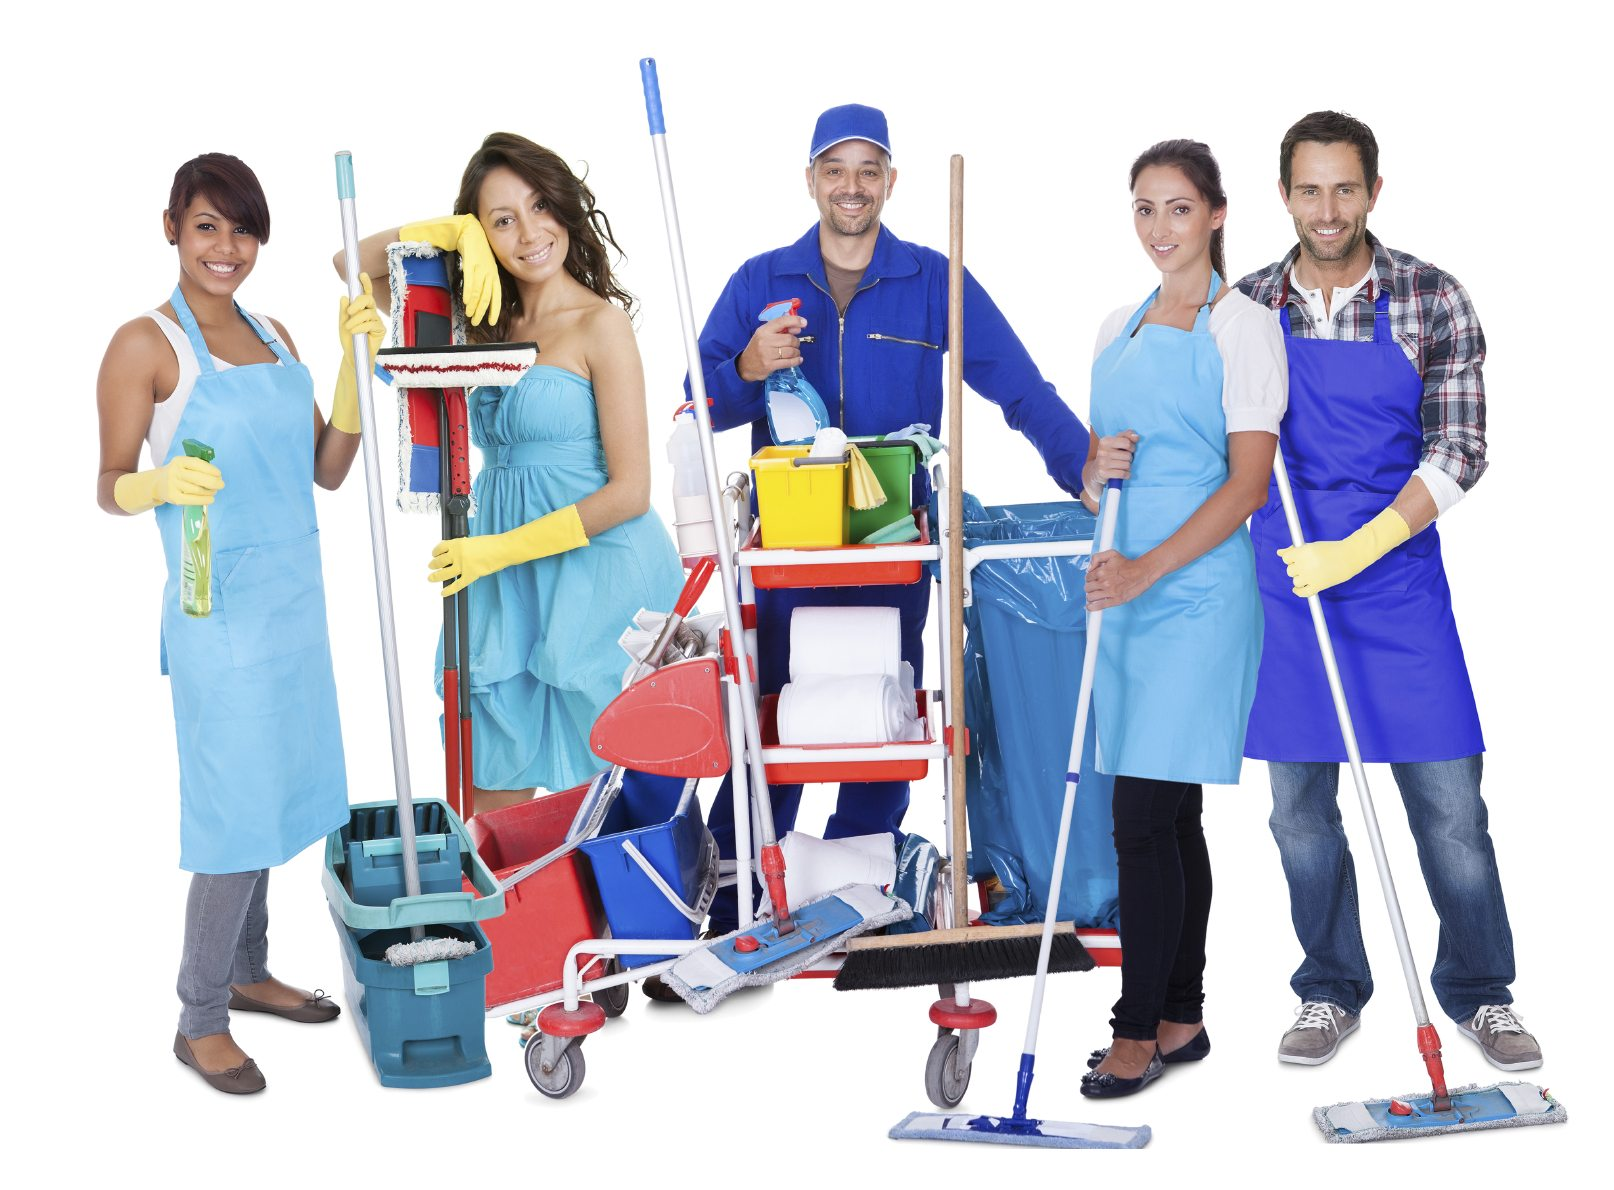 Safety Makers | Workplace Health and Safety |Cleaning - general Safe Work Procedure (SWP)